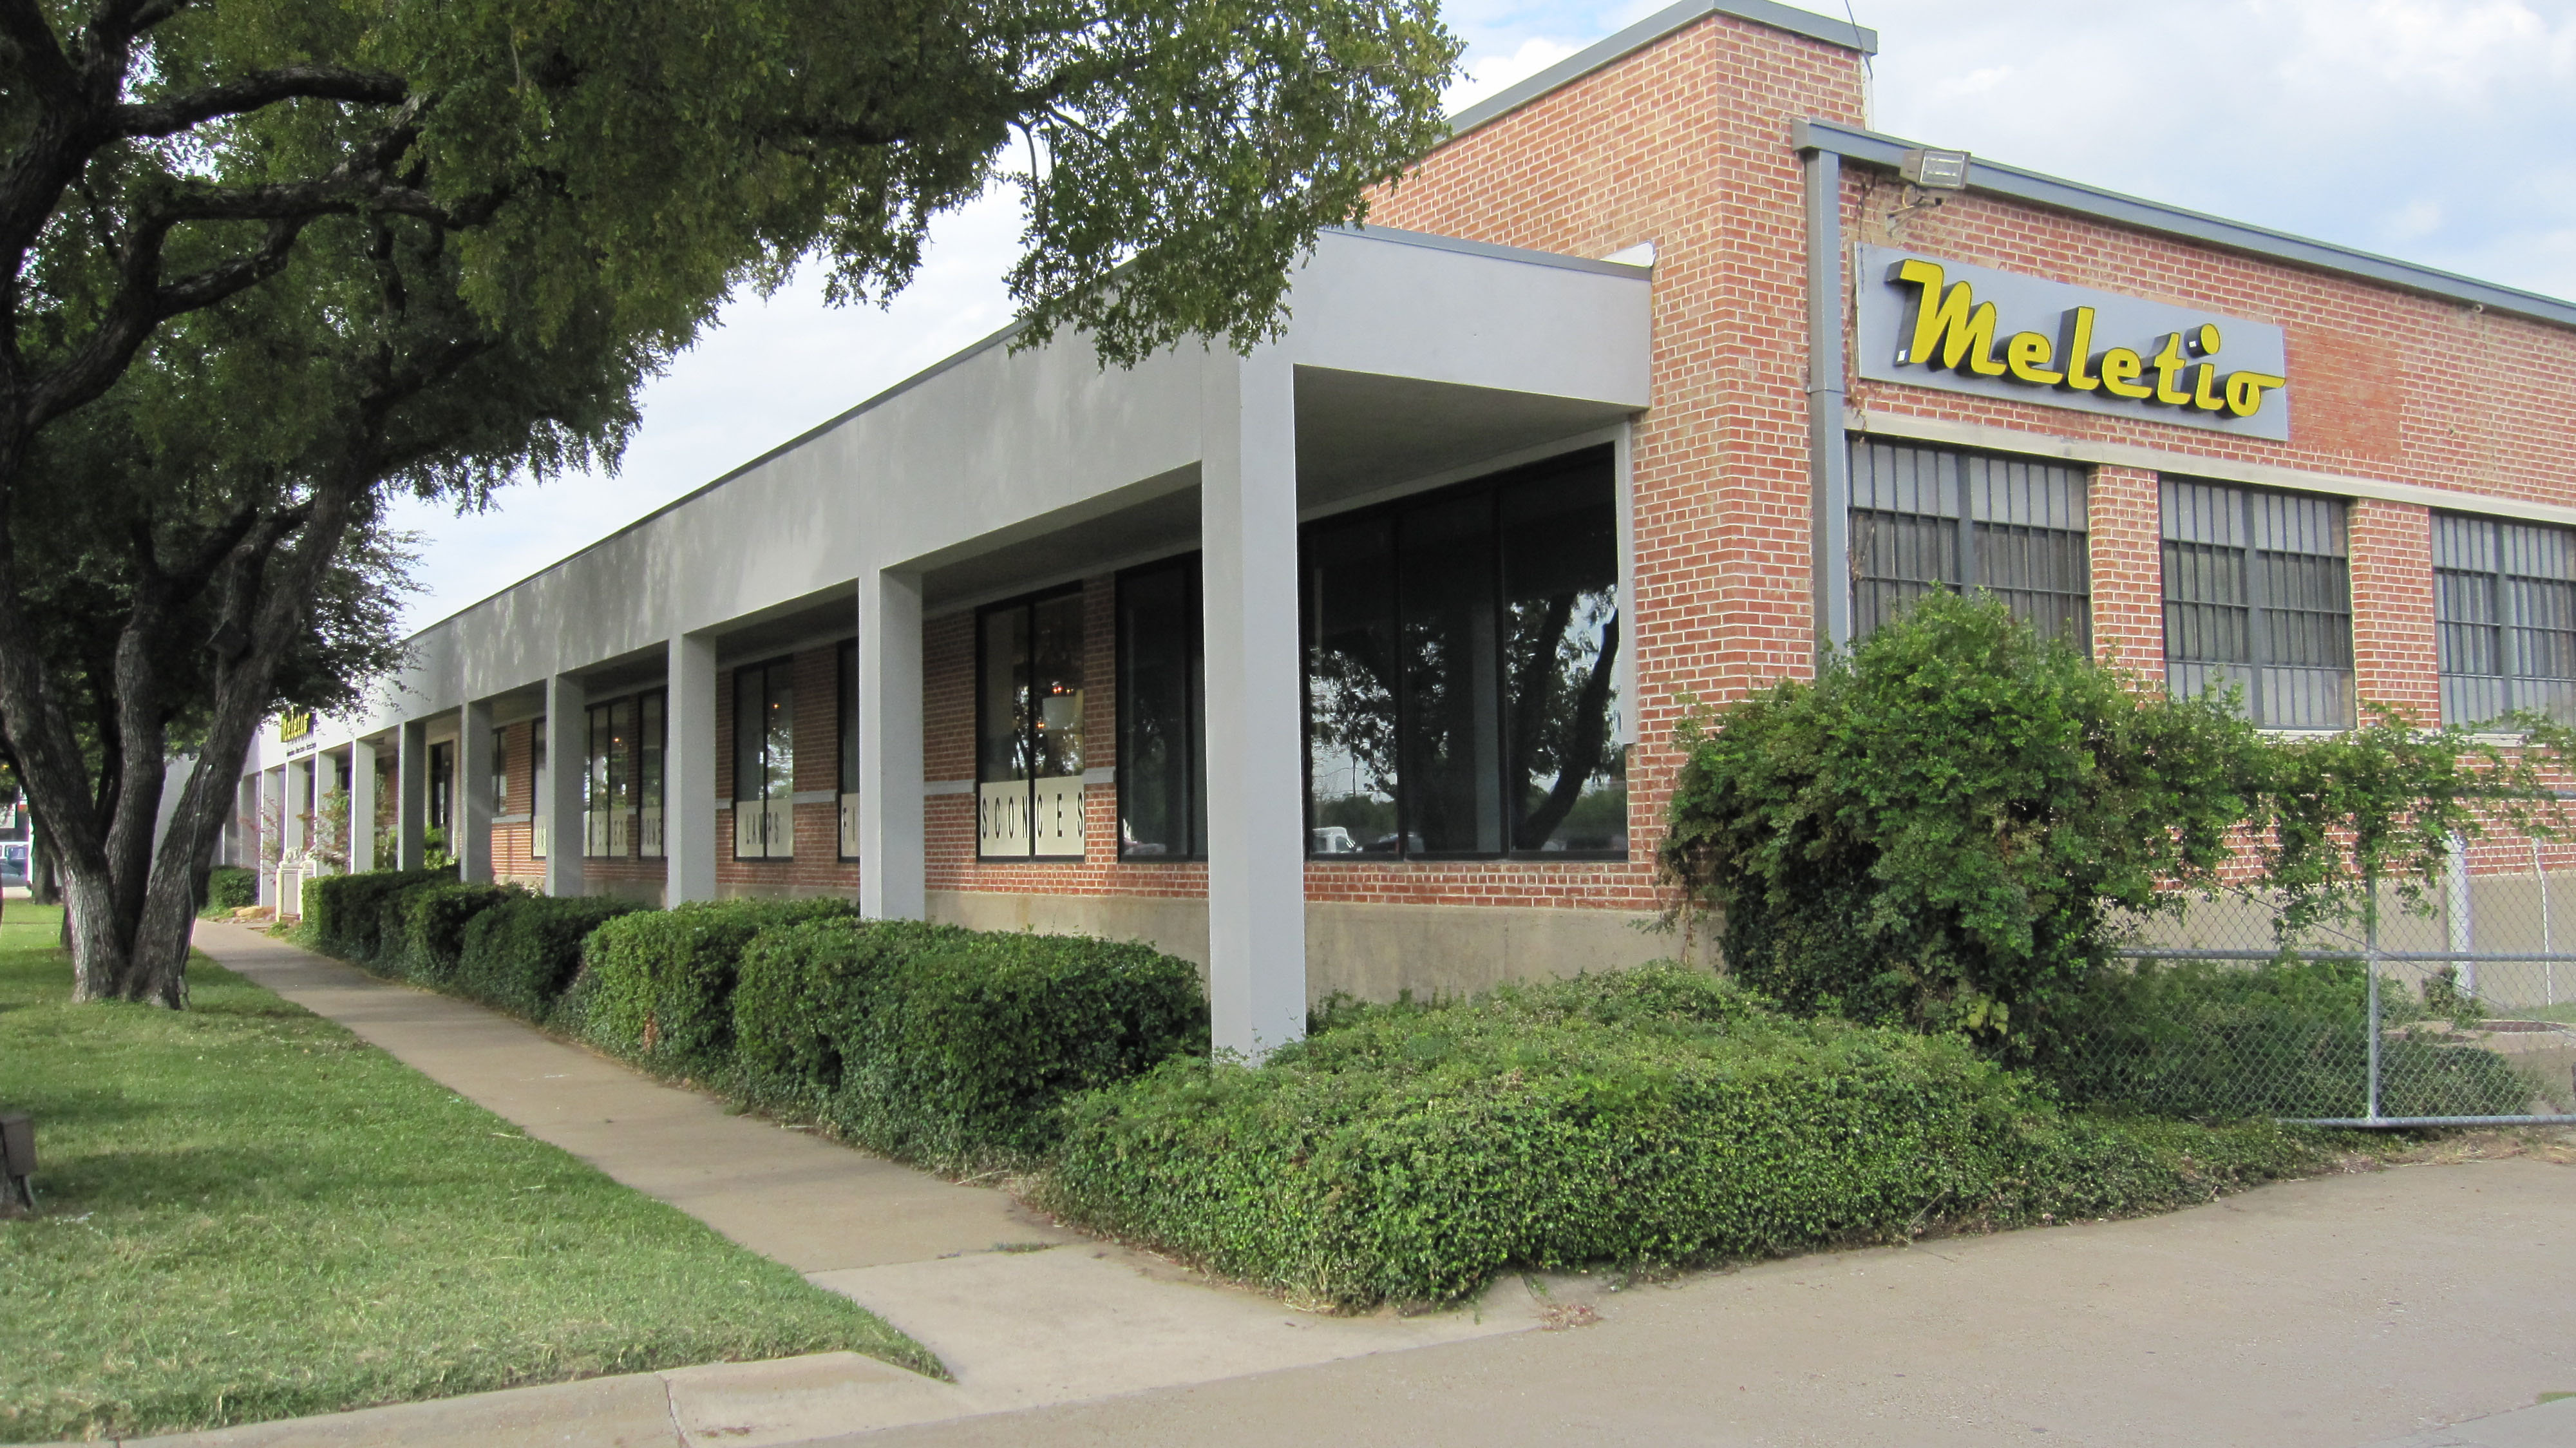 Meletio S Lighting Amp Electrical Supply Dallas Fort Worth